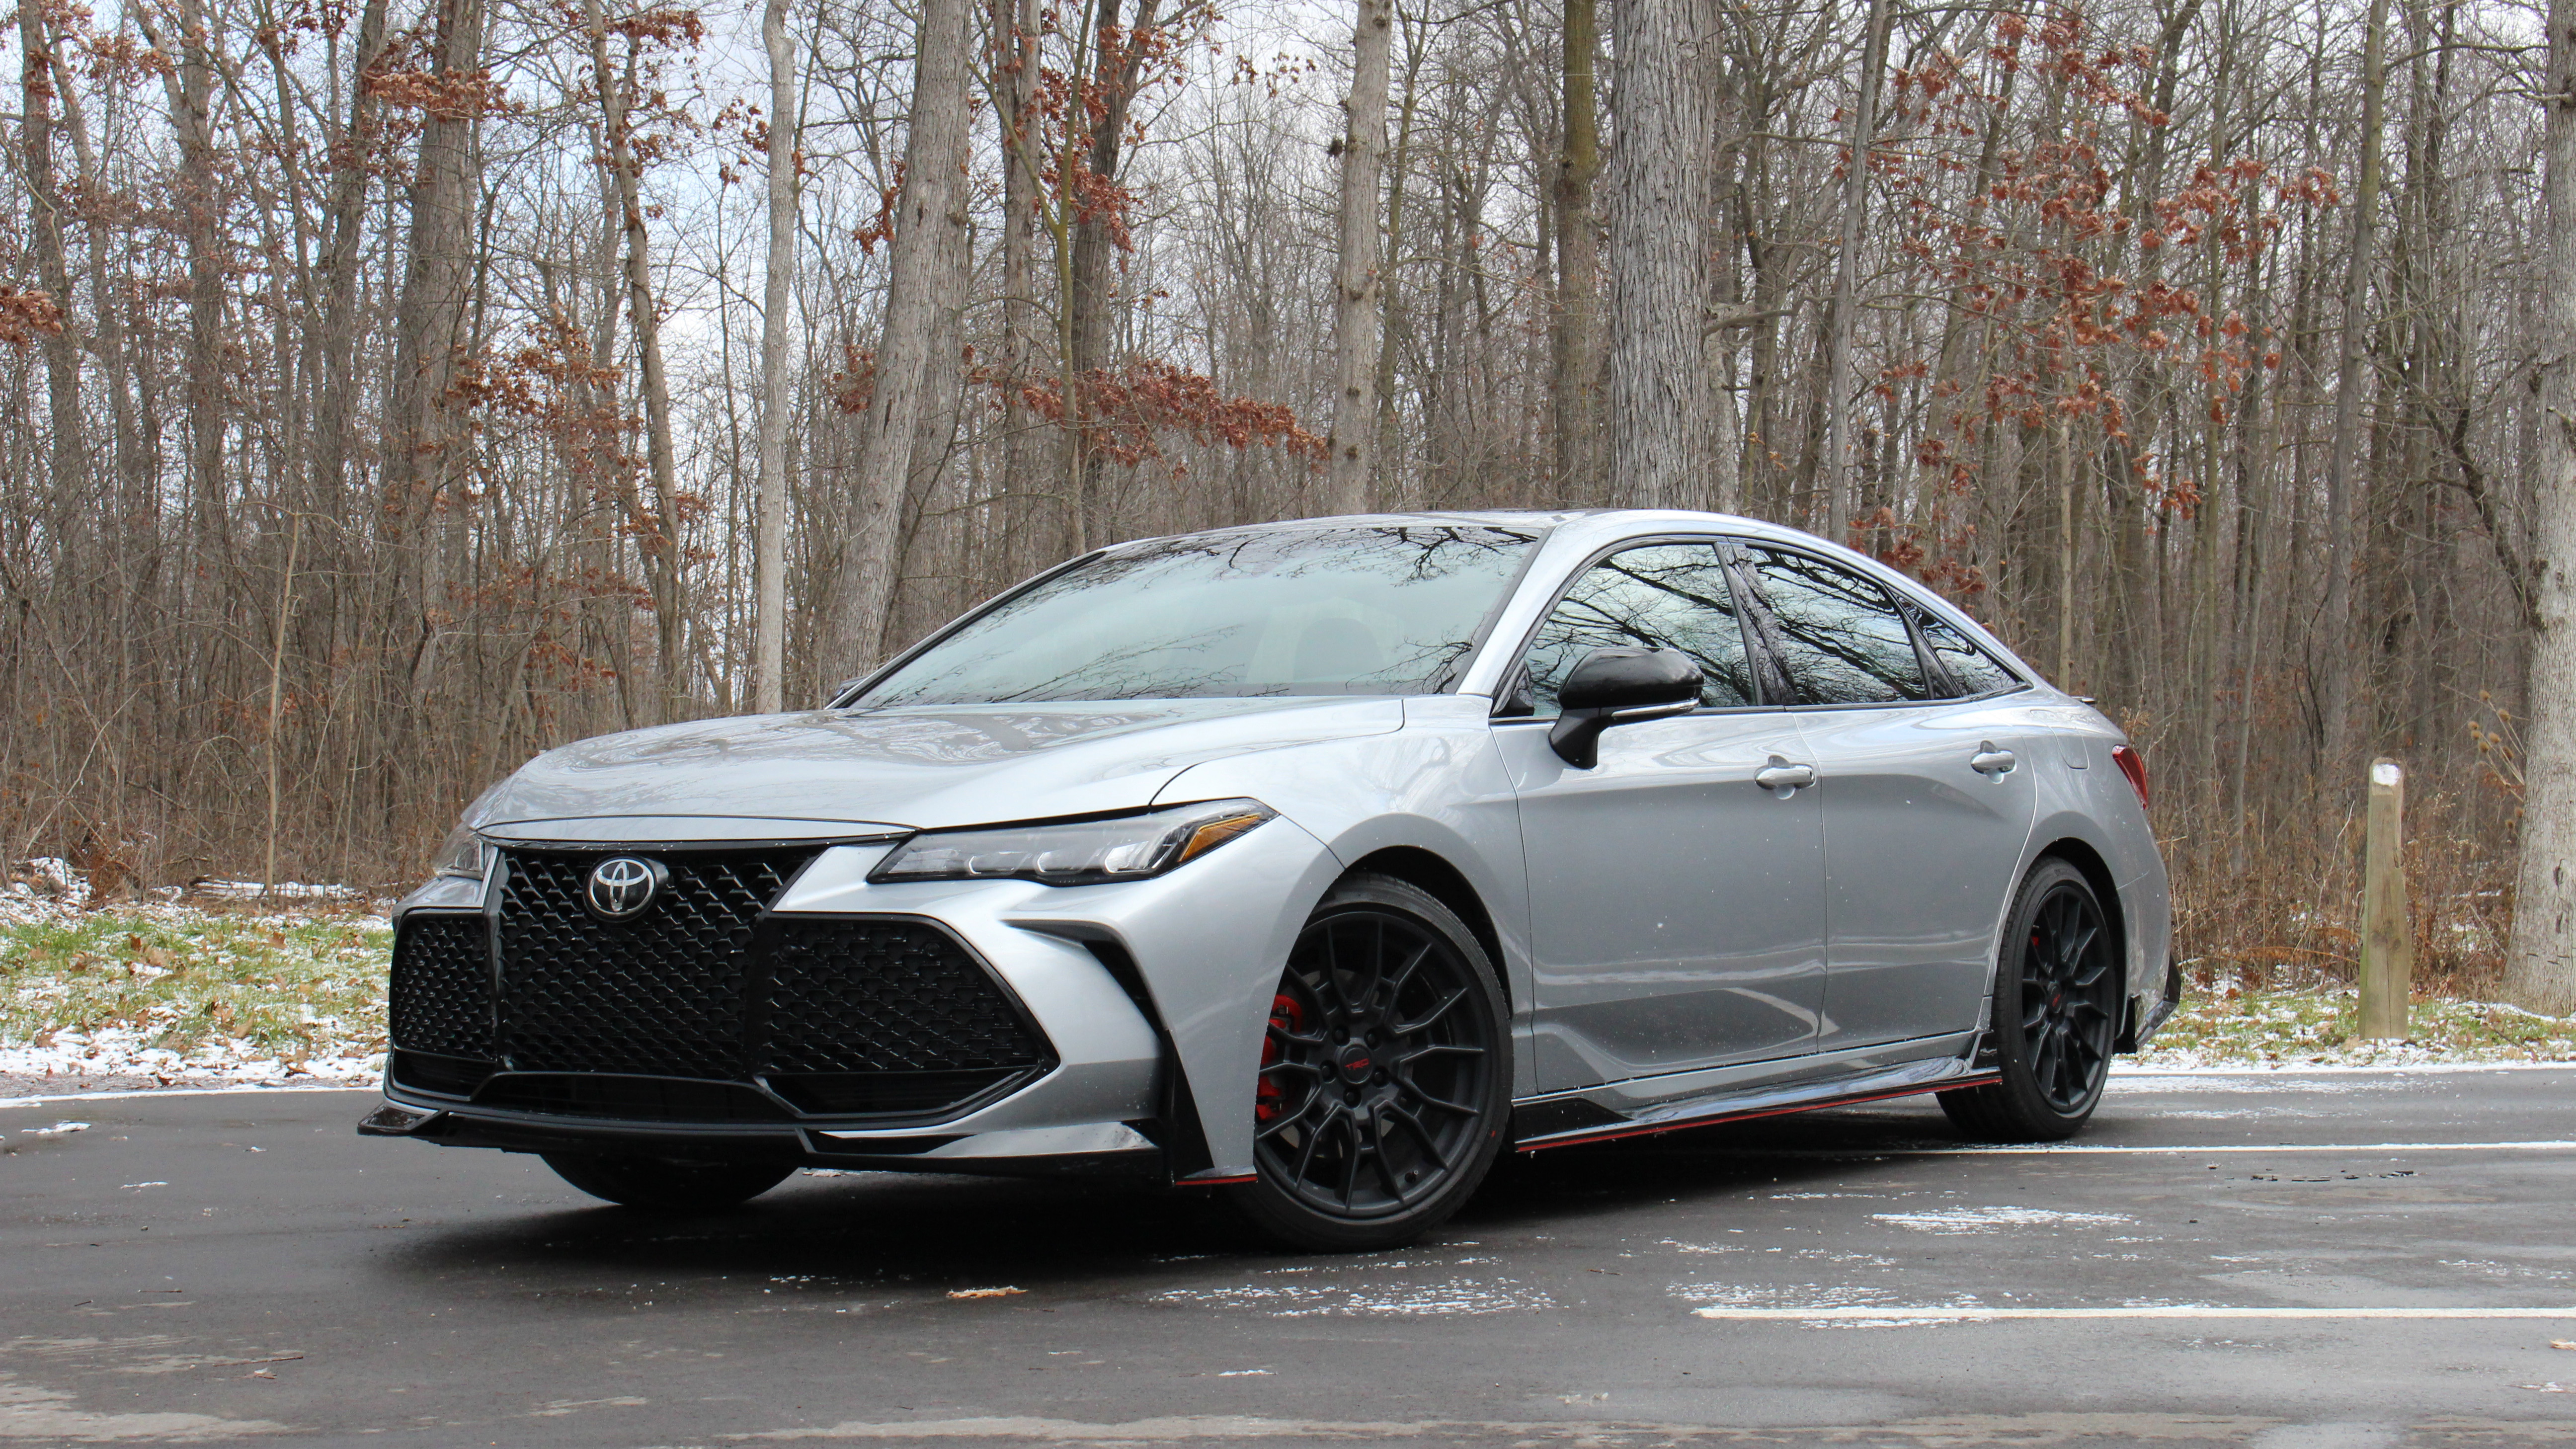 Toyota Certified Pre Owned >> 2020 Toyota Avalon TRD Drivers' Notes | Engine, handling, features | Autoblog